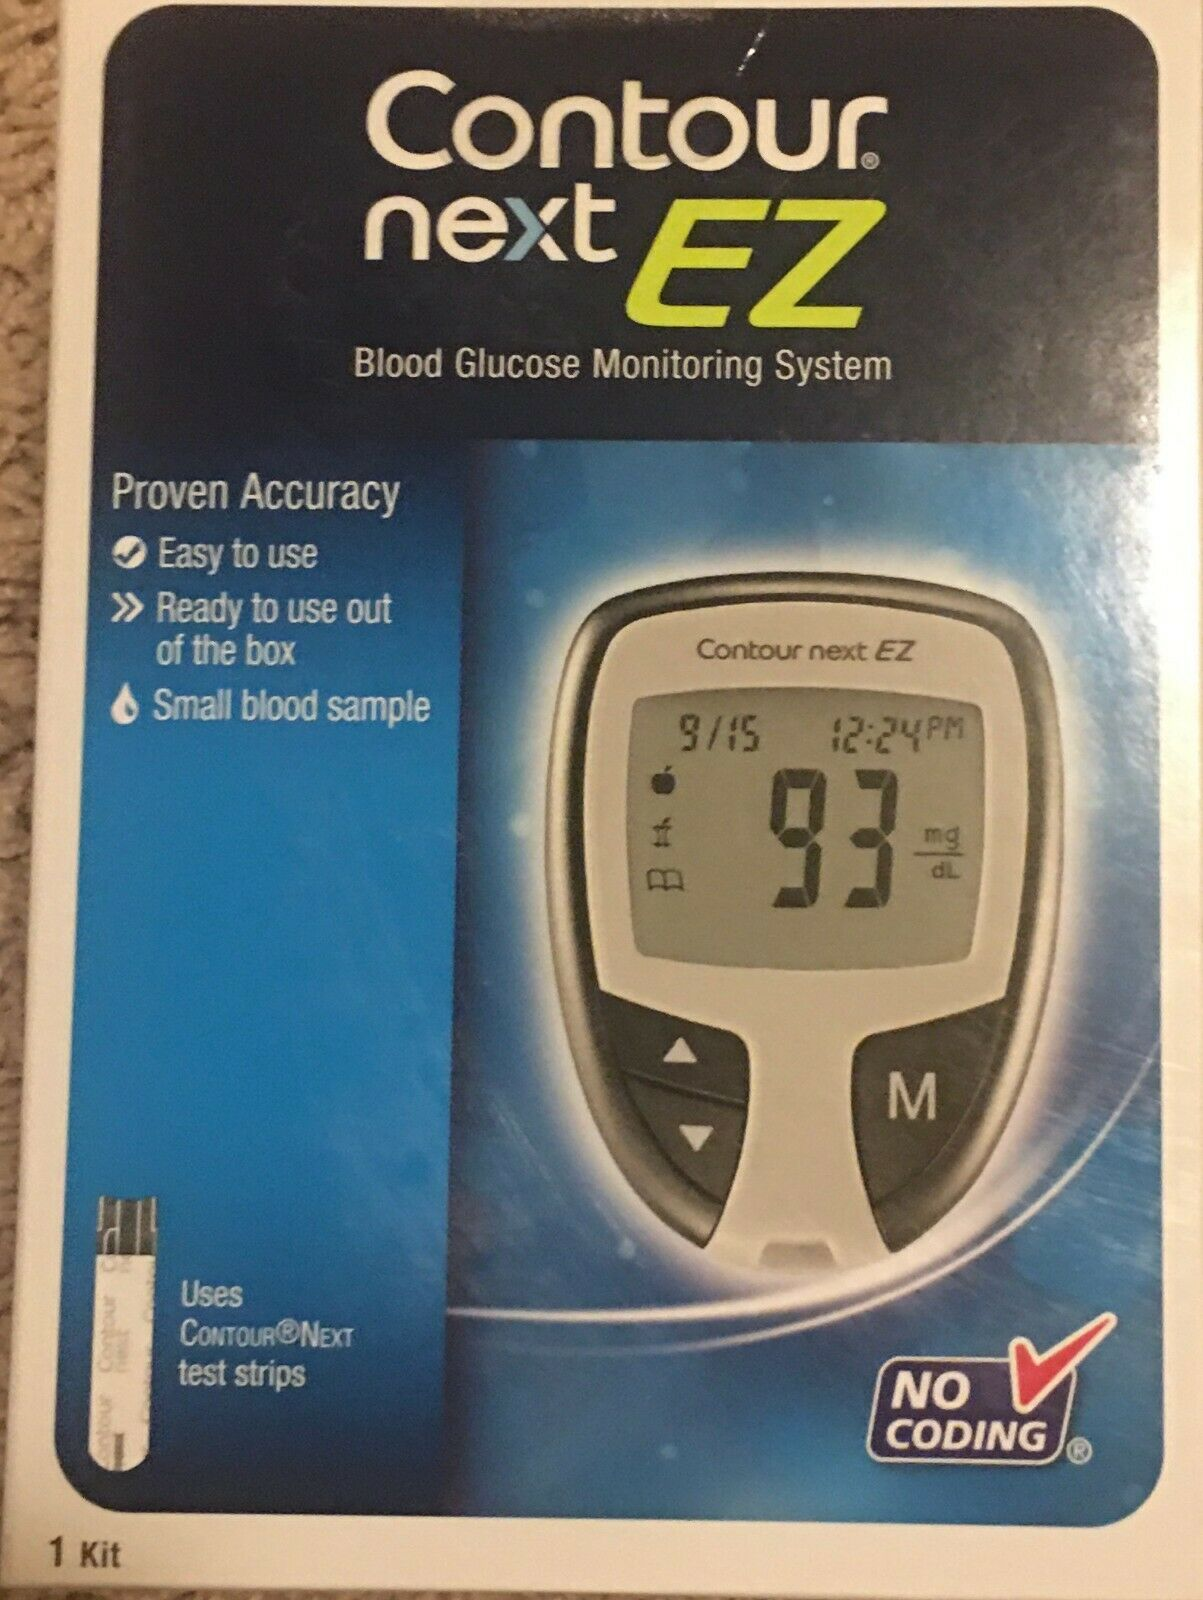 Ascensia  Contour NEXT EZ Blood Glucose Meter Kit Unopened